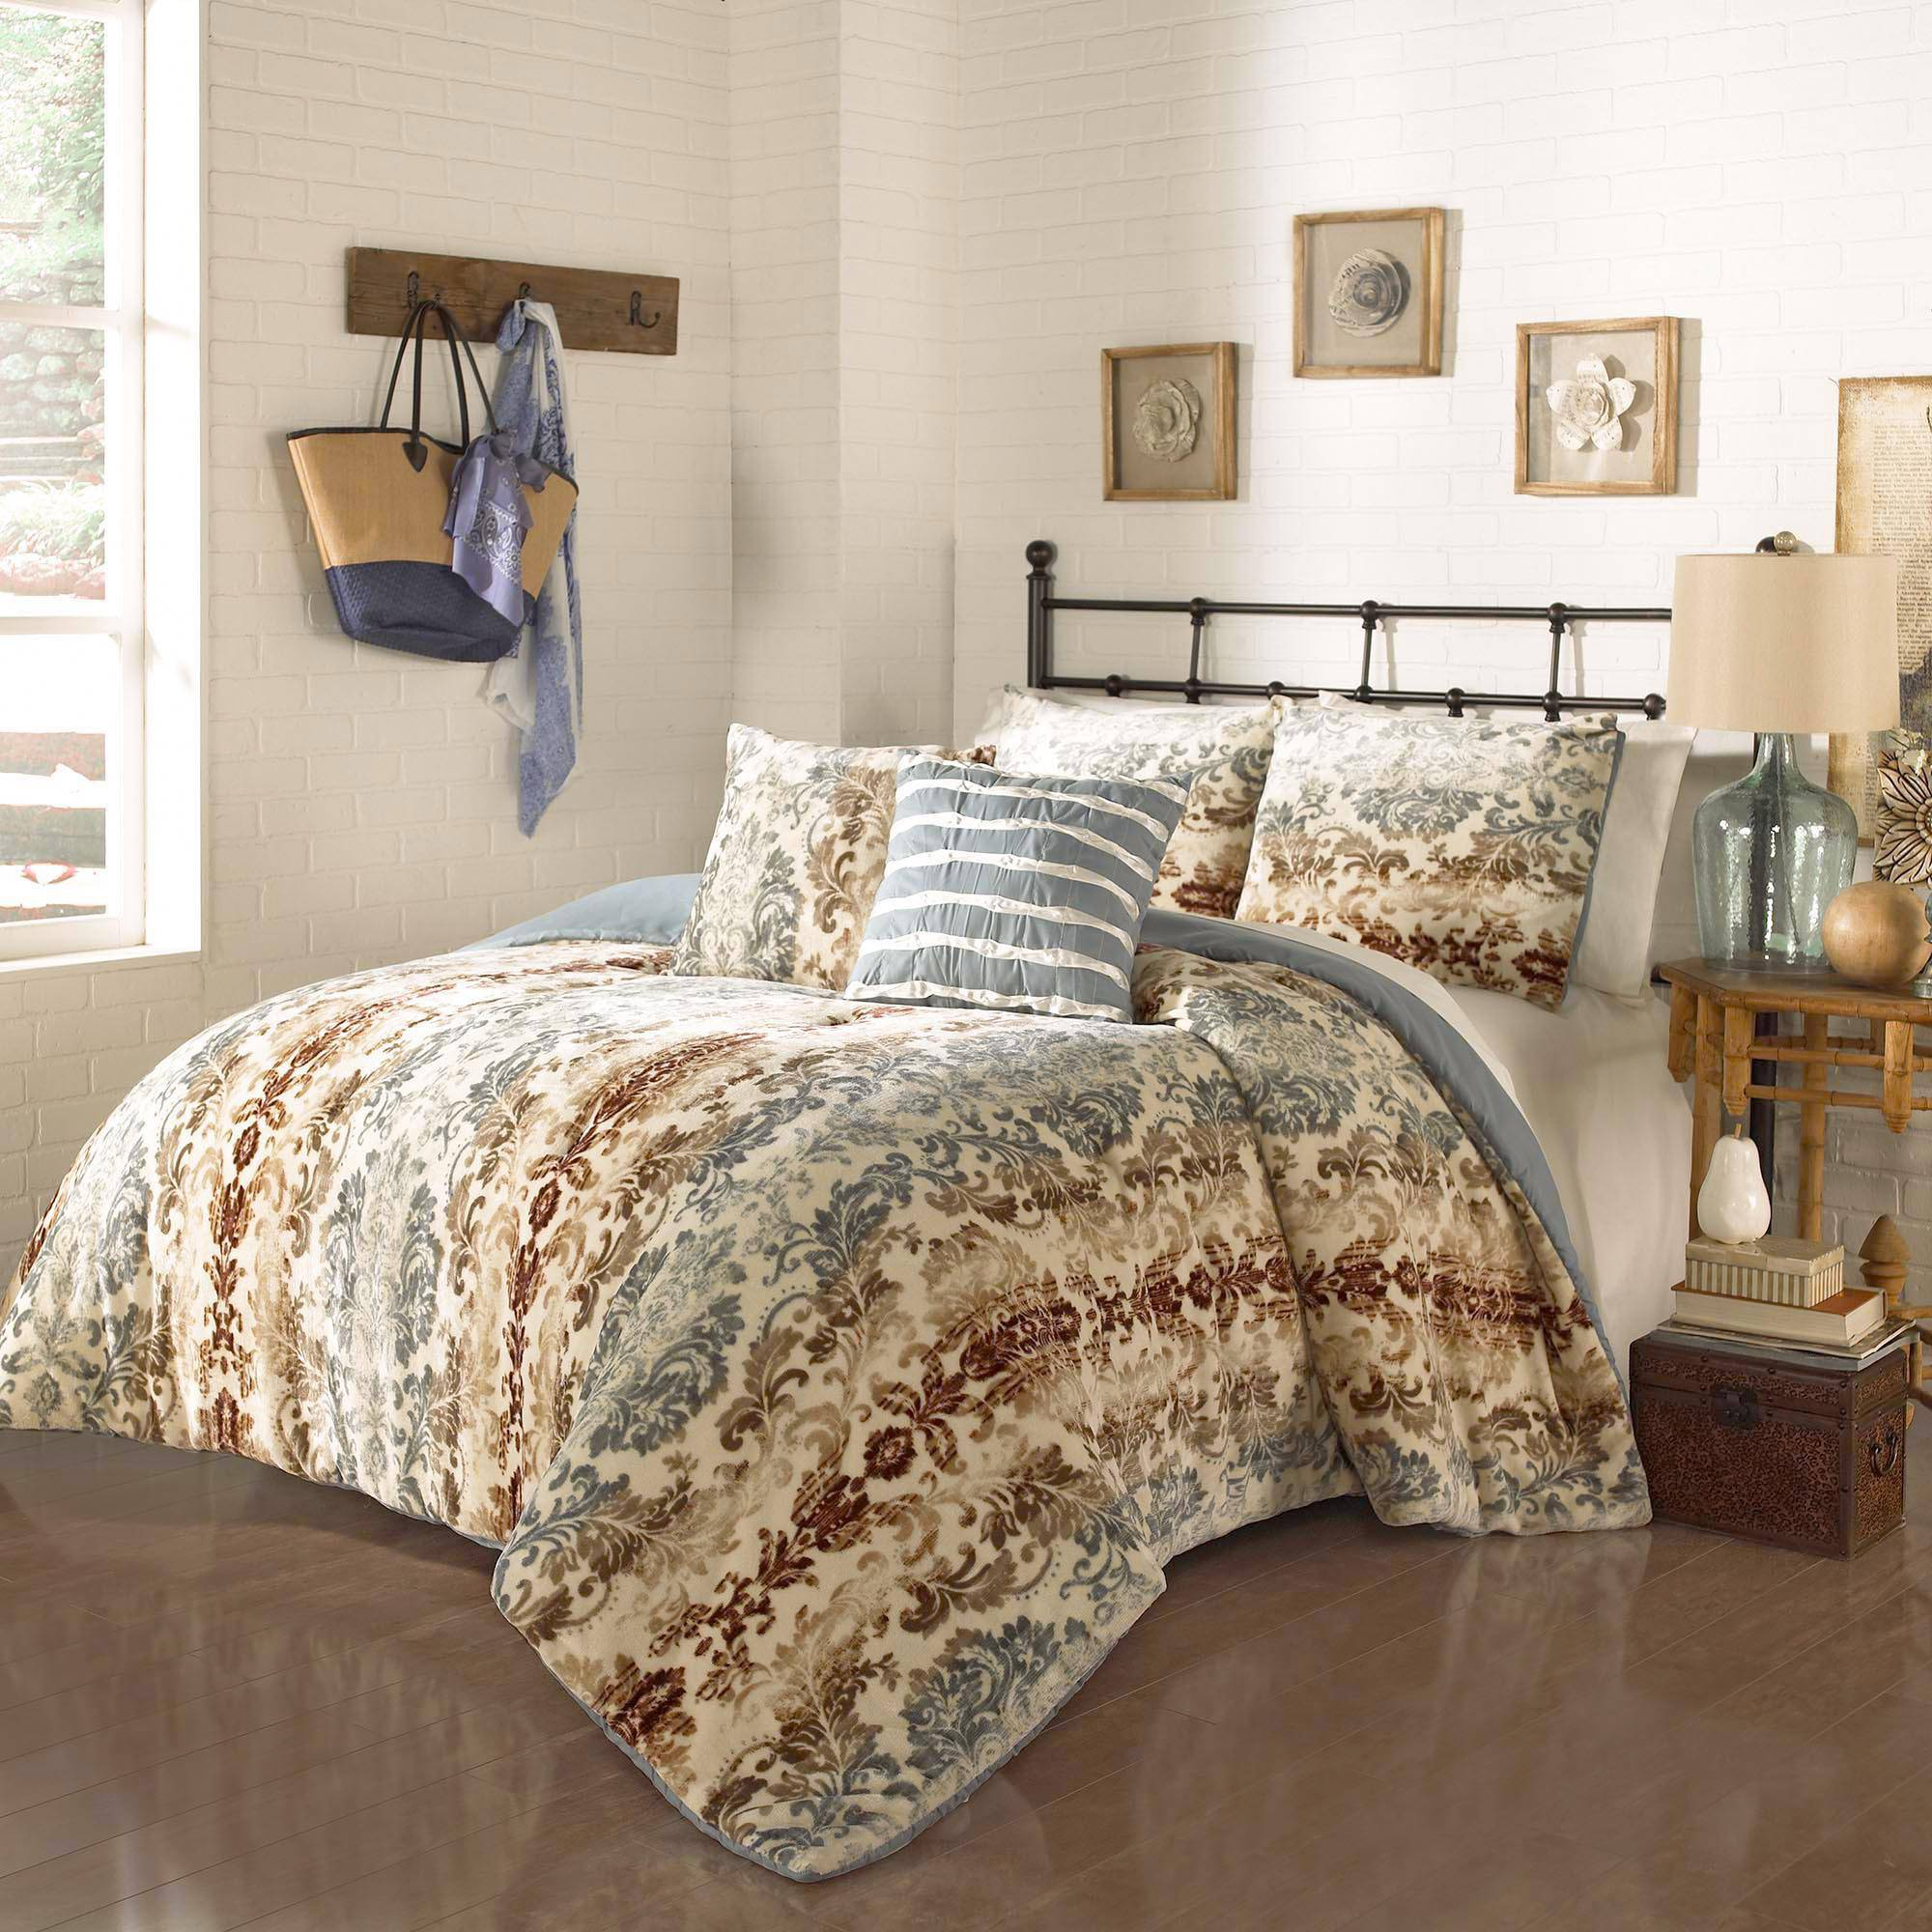 Ehs Selma Plush Decor Comforter Set